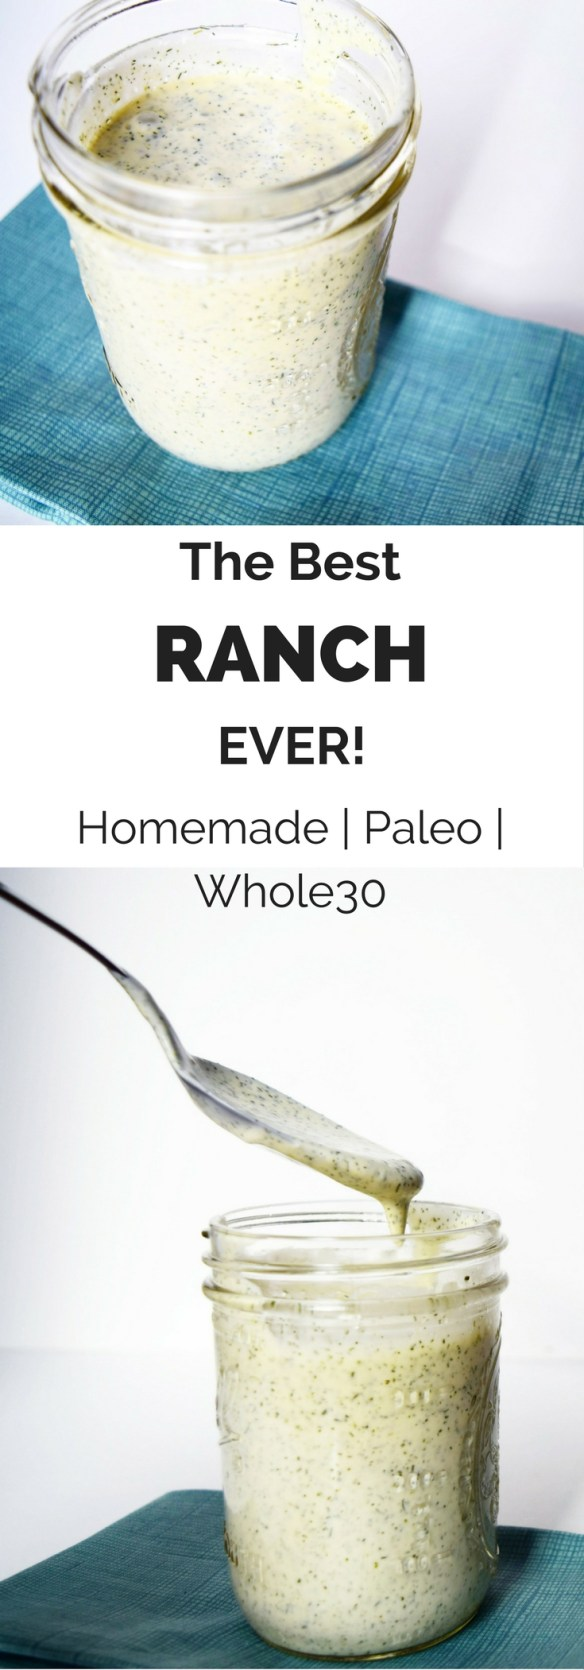 The Best Ranch Ever - This Whole30 ranch is easy and quick to make. It's creamy with a little tang and lots of dill and chives, bringing a huge flavor punch. | savorandglow.com